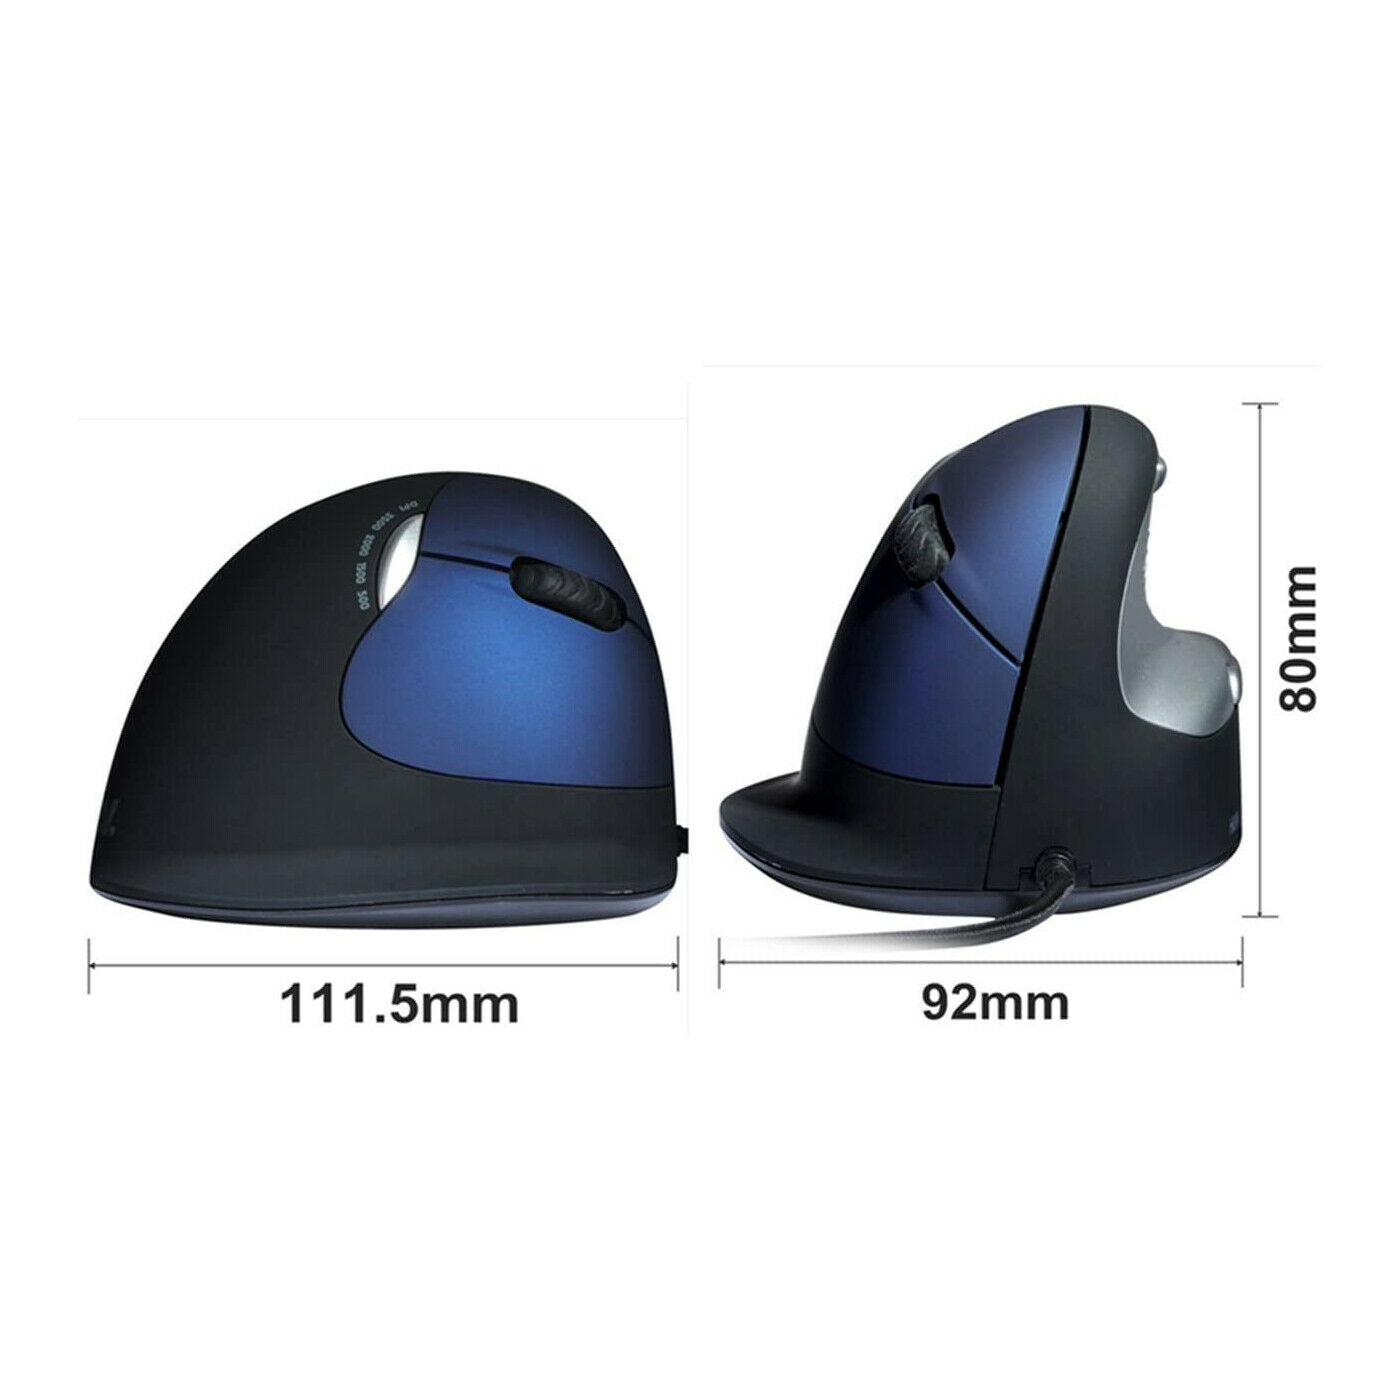 Black Large Human Ergonomic Design USB Wired Vertical Mouse with 500-2400DPI